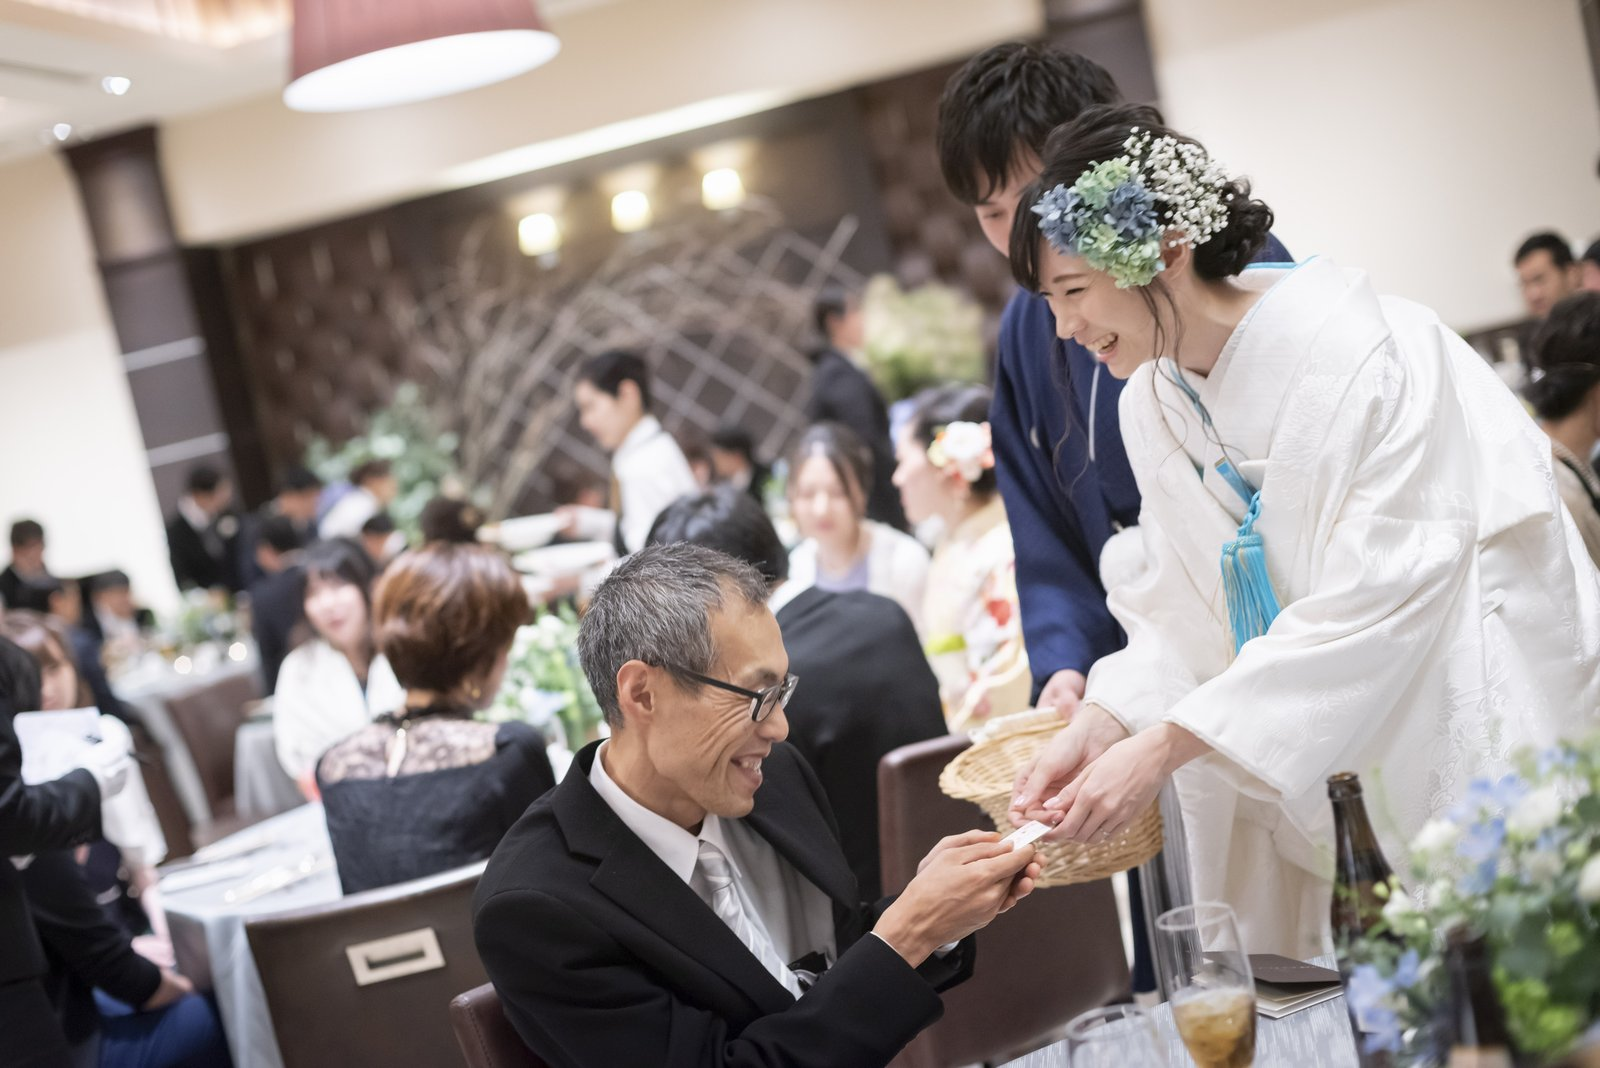 高松市の結婚式場アイルバレクラブ おみくじ